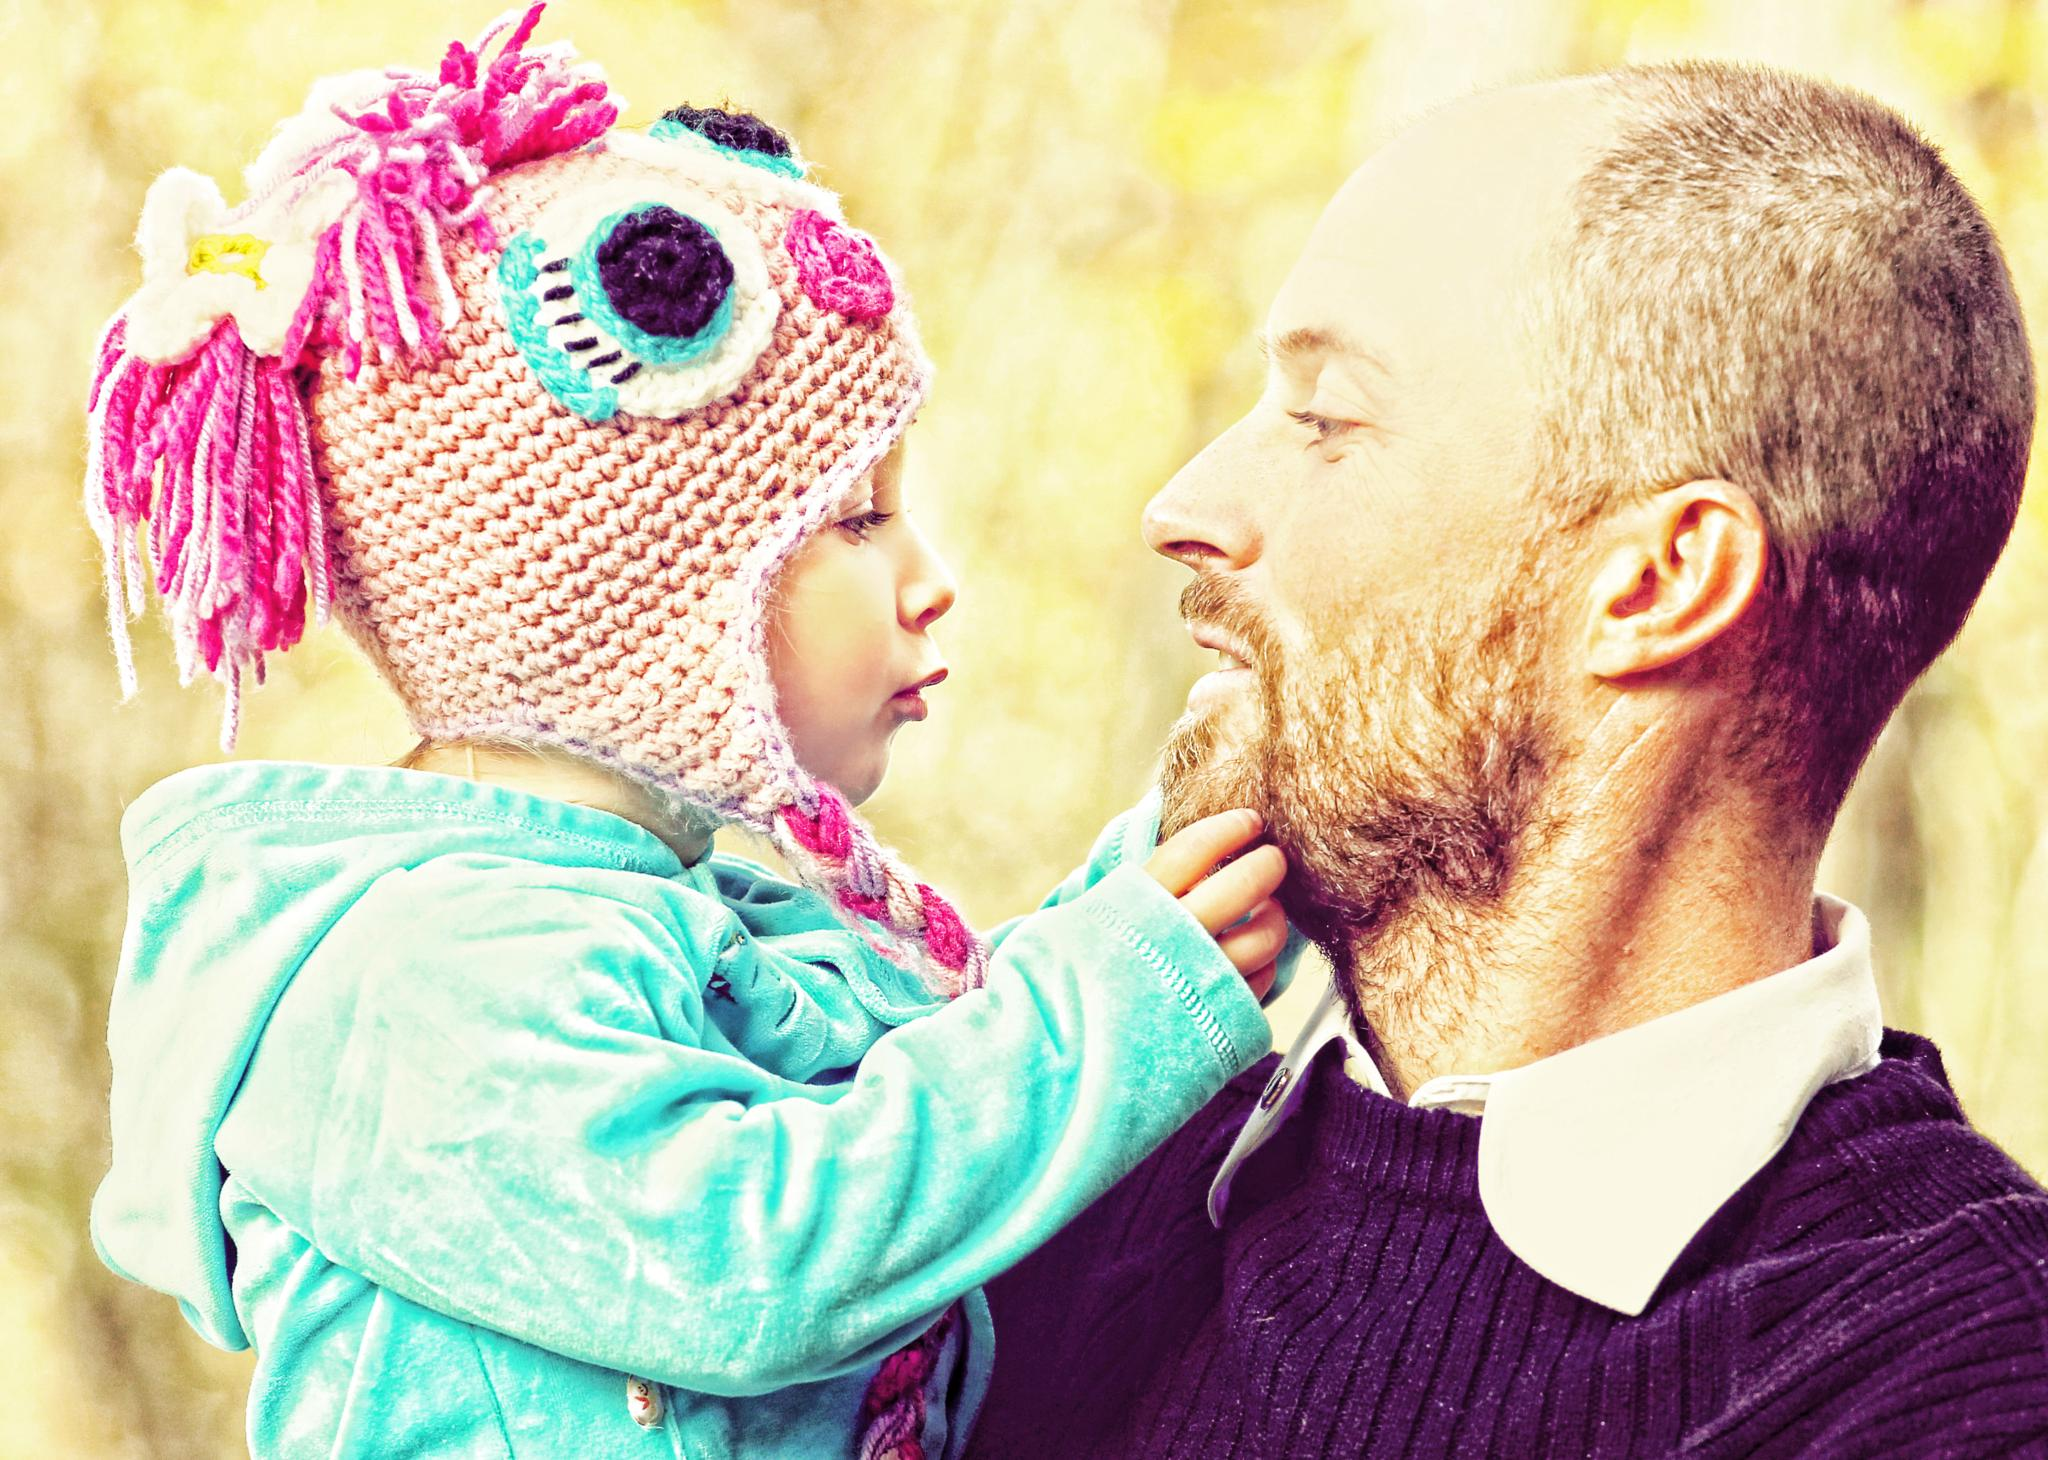 Daddy's girl by LisaM Photography